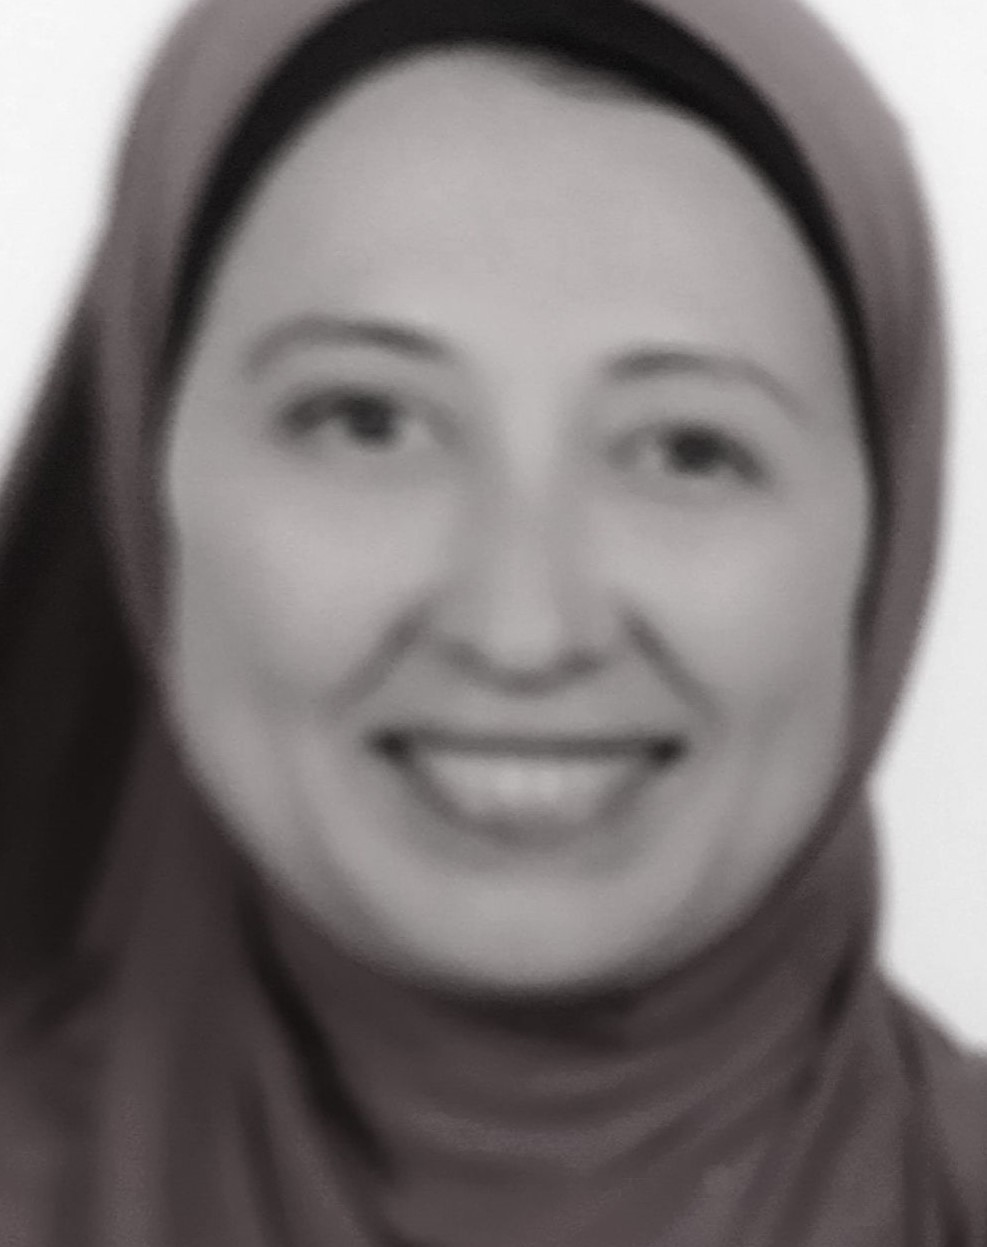 Dr. Eman Sedky